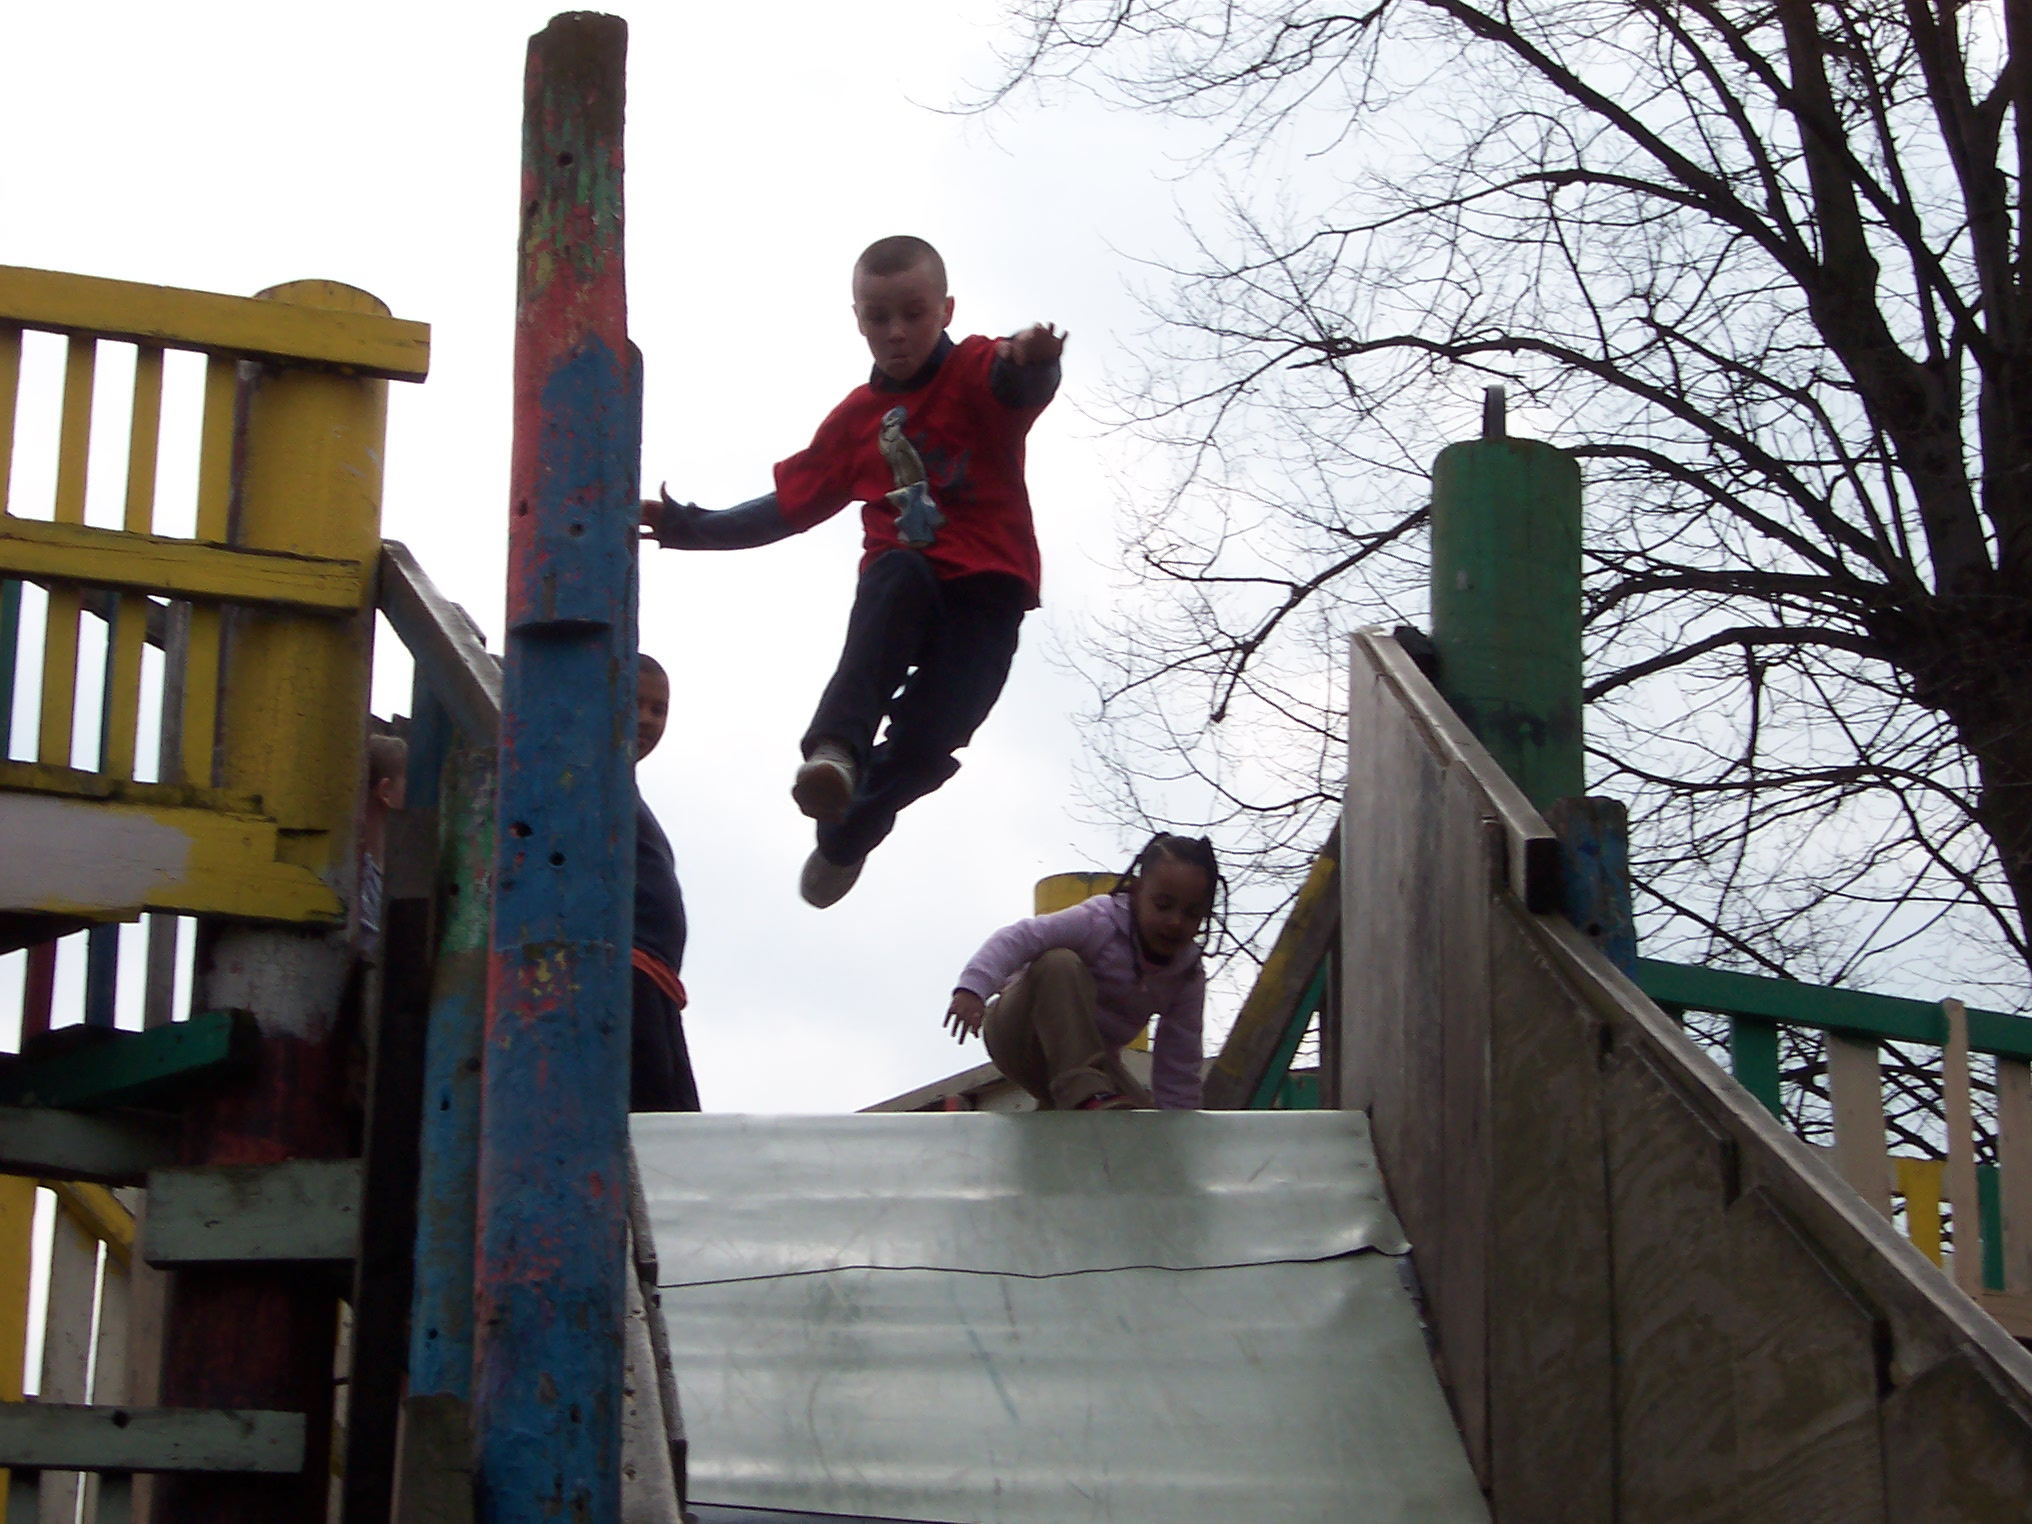 Risky Play Why Children Love It And >> Risk And Safety Policy For Play